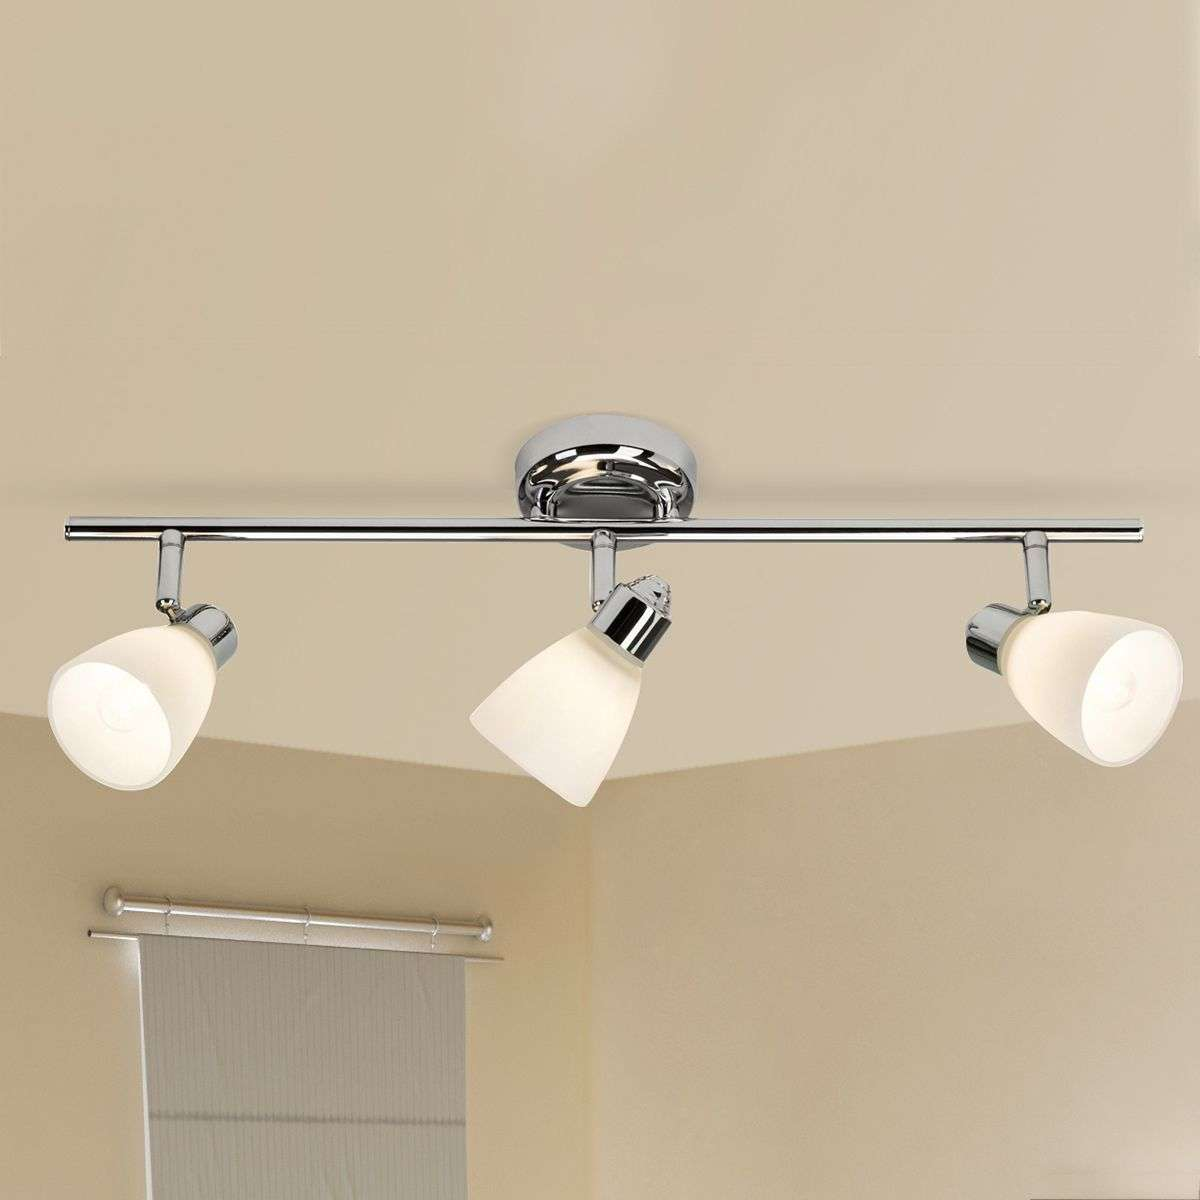 Three Bulb Ceiling Lamp Kensington With Ip44 1509161 31